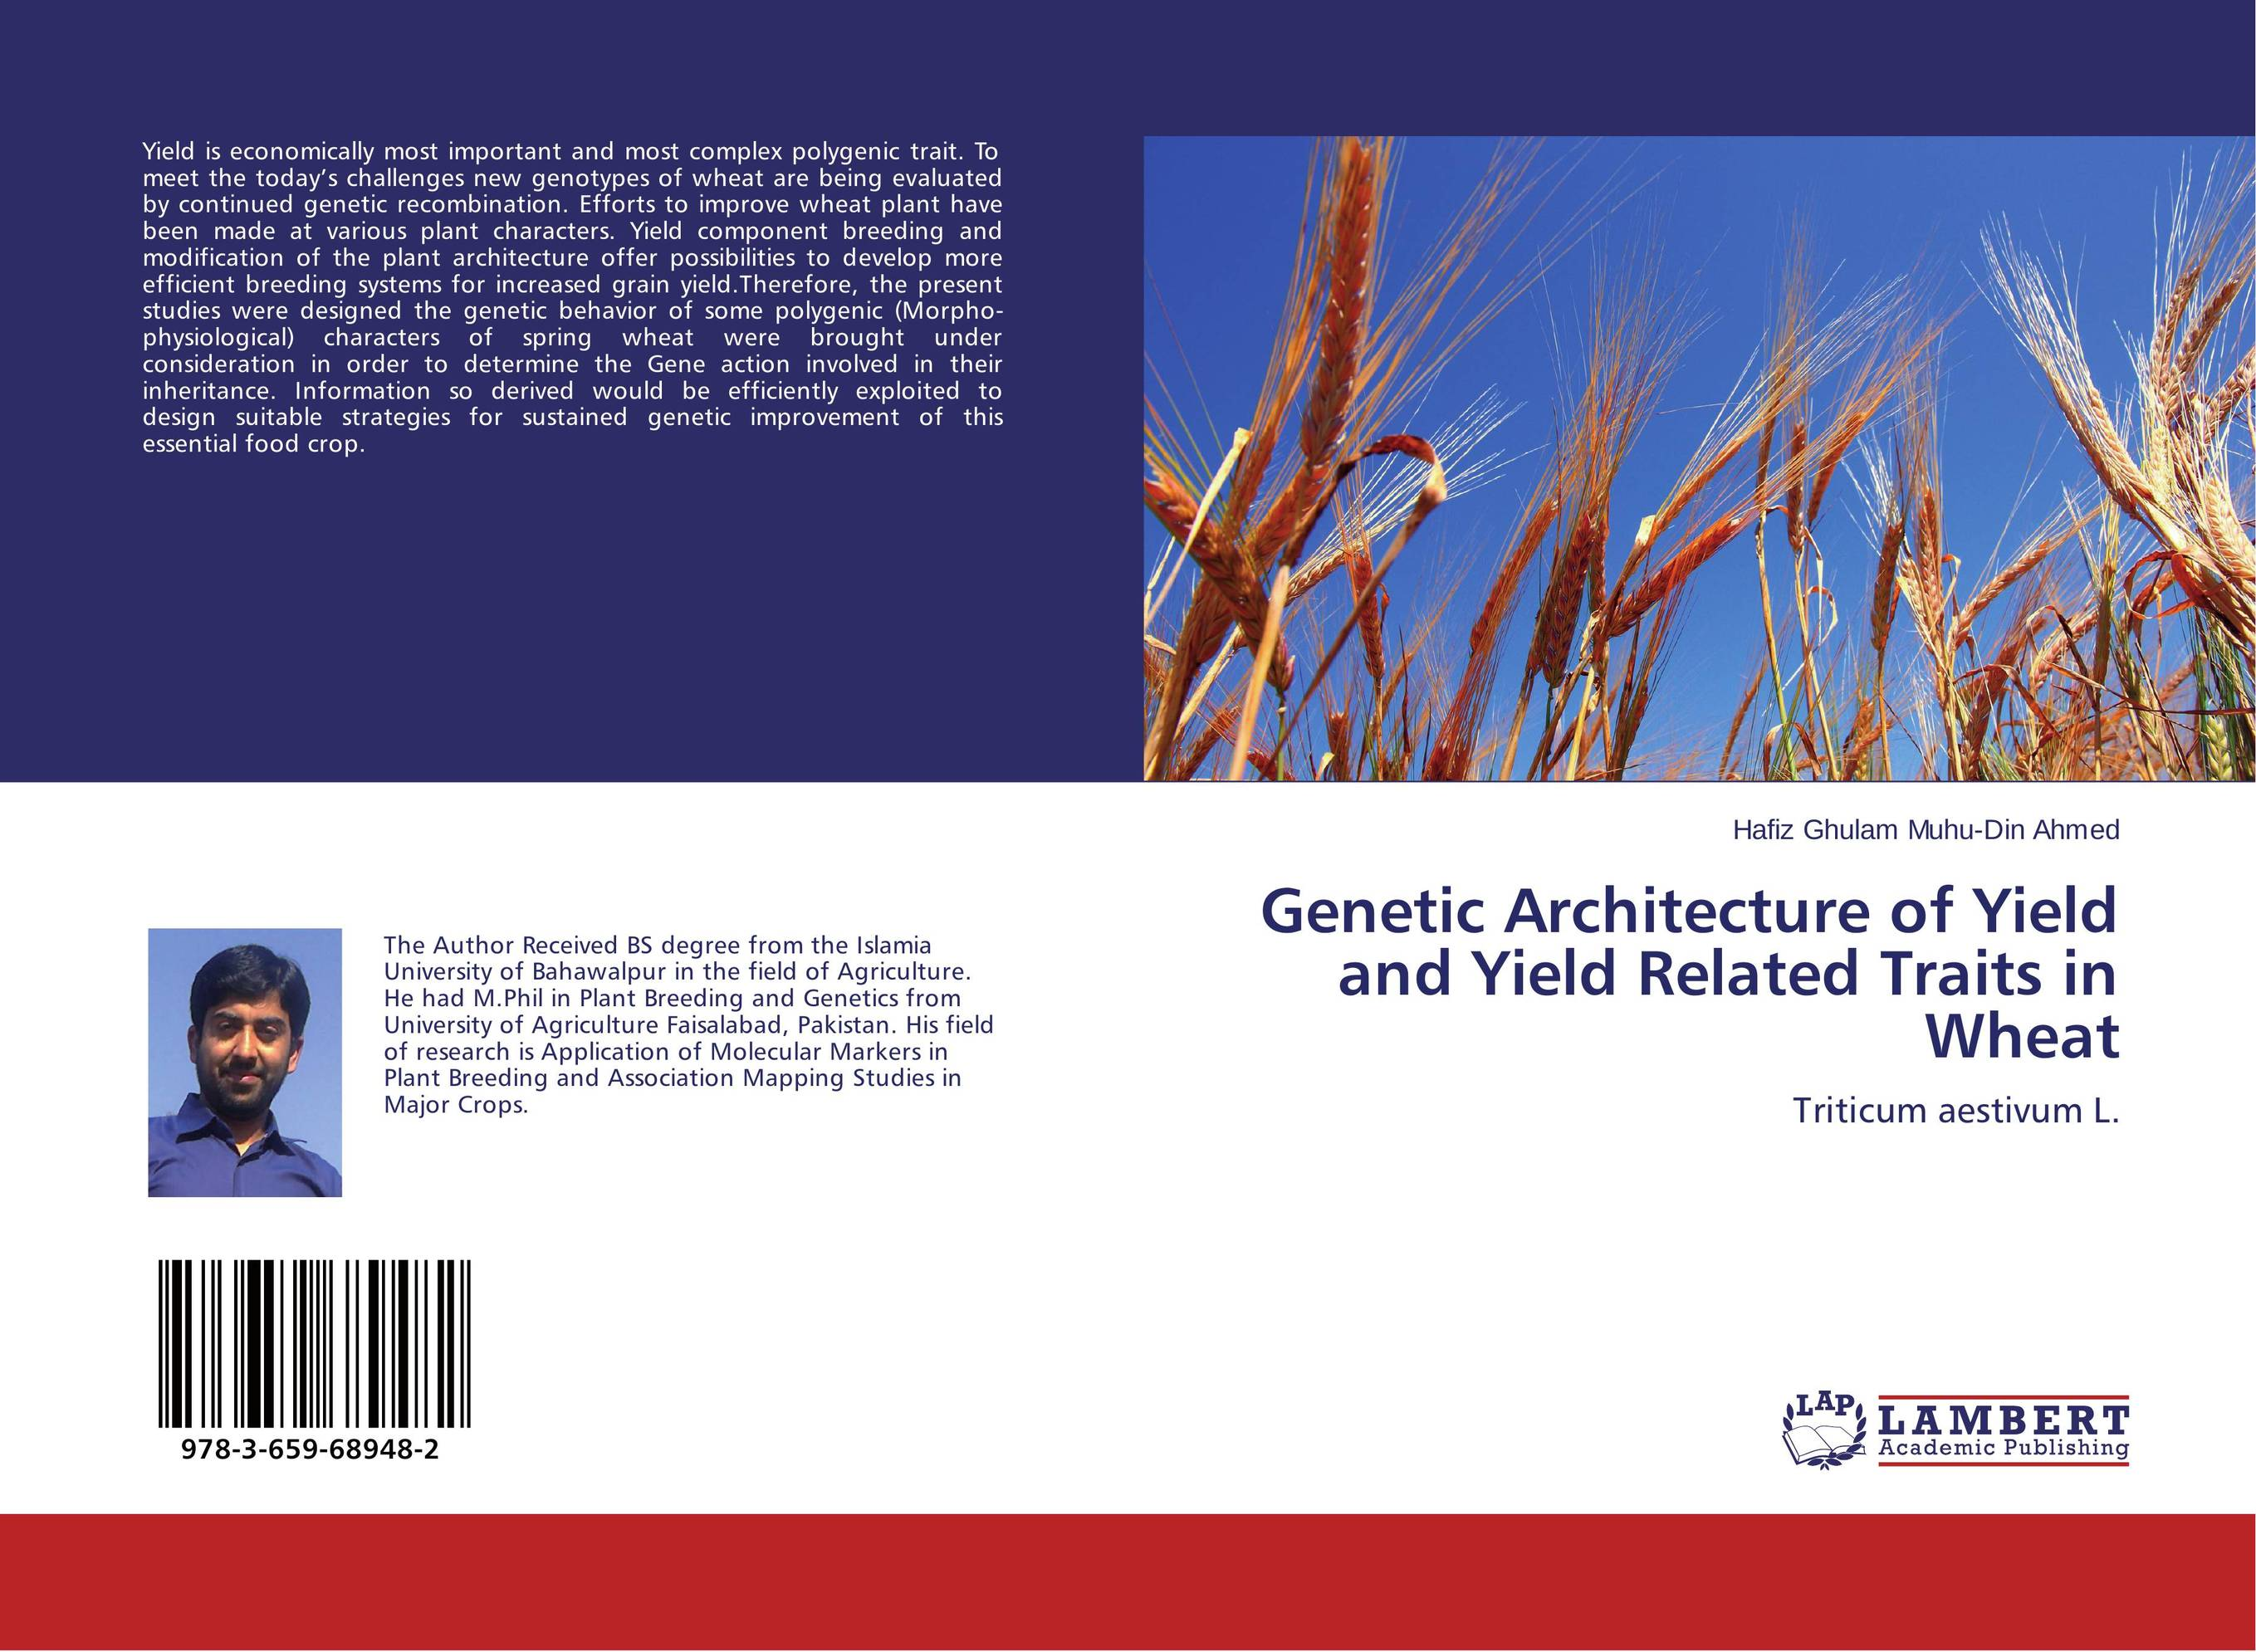 цены Genetic Architecture of Yield and Yield Related Traits in Wheat